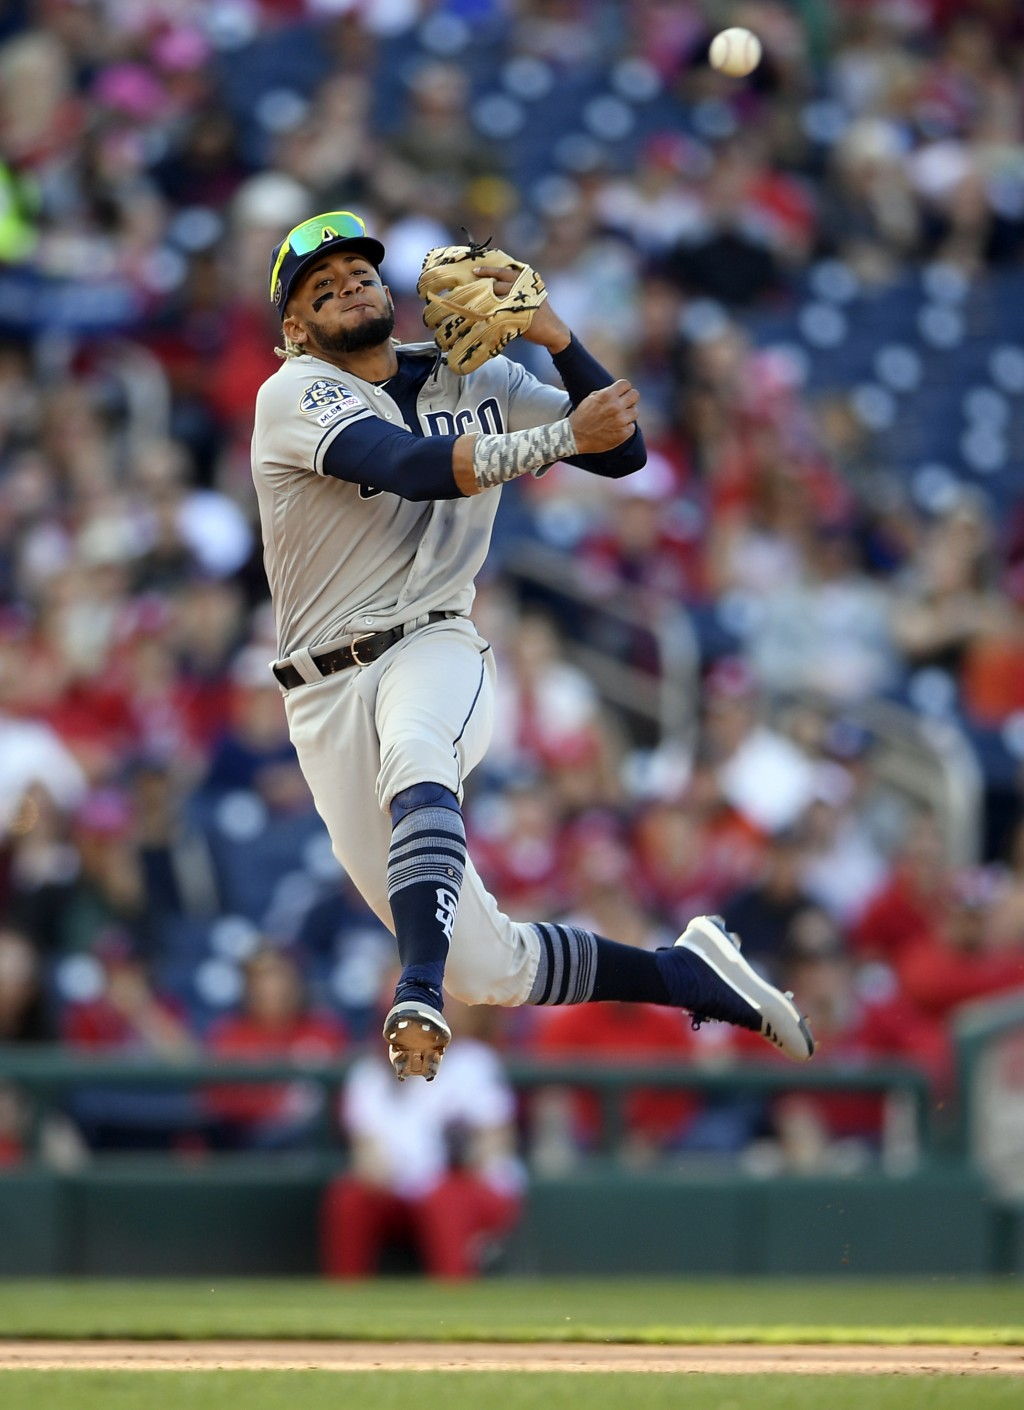 San Diego Padres shortstop Fernando Tatis Jr. throws to first to put out Washington Nationals' Adam Eaton during the sixth inning of a baseball game,